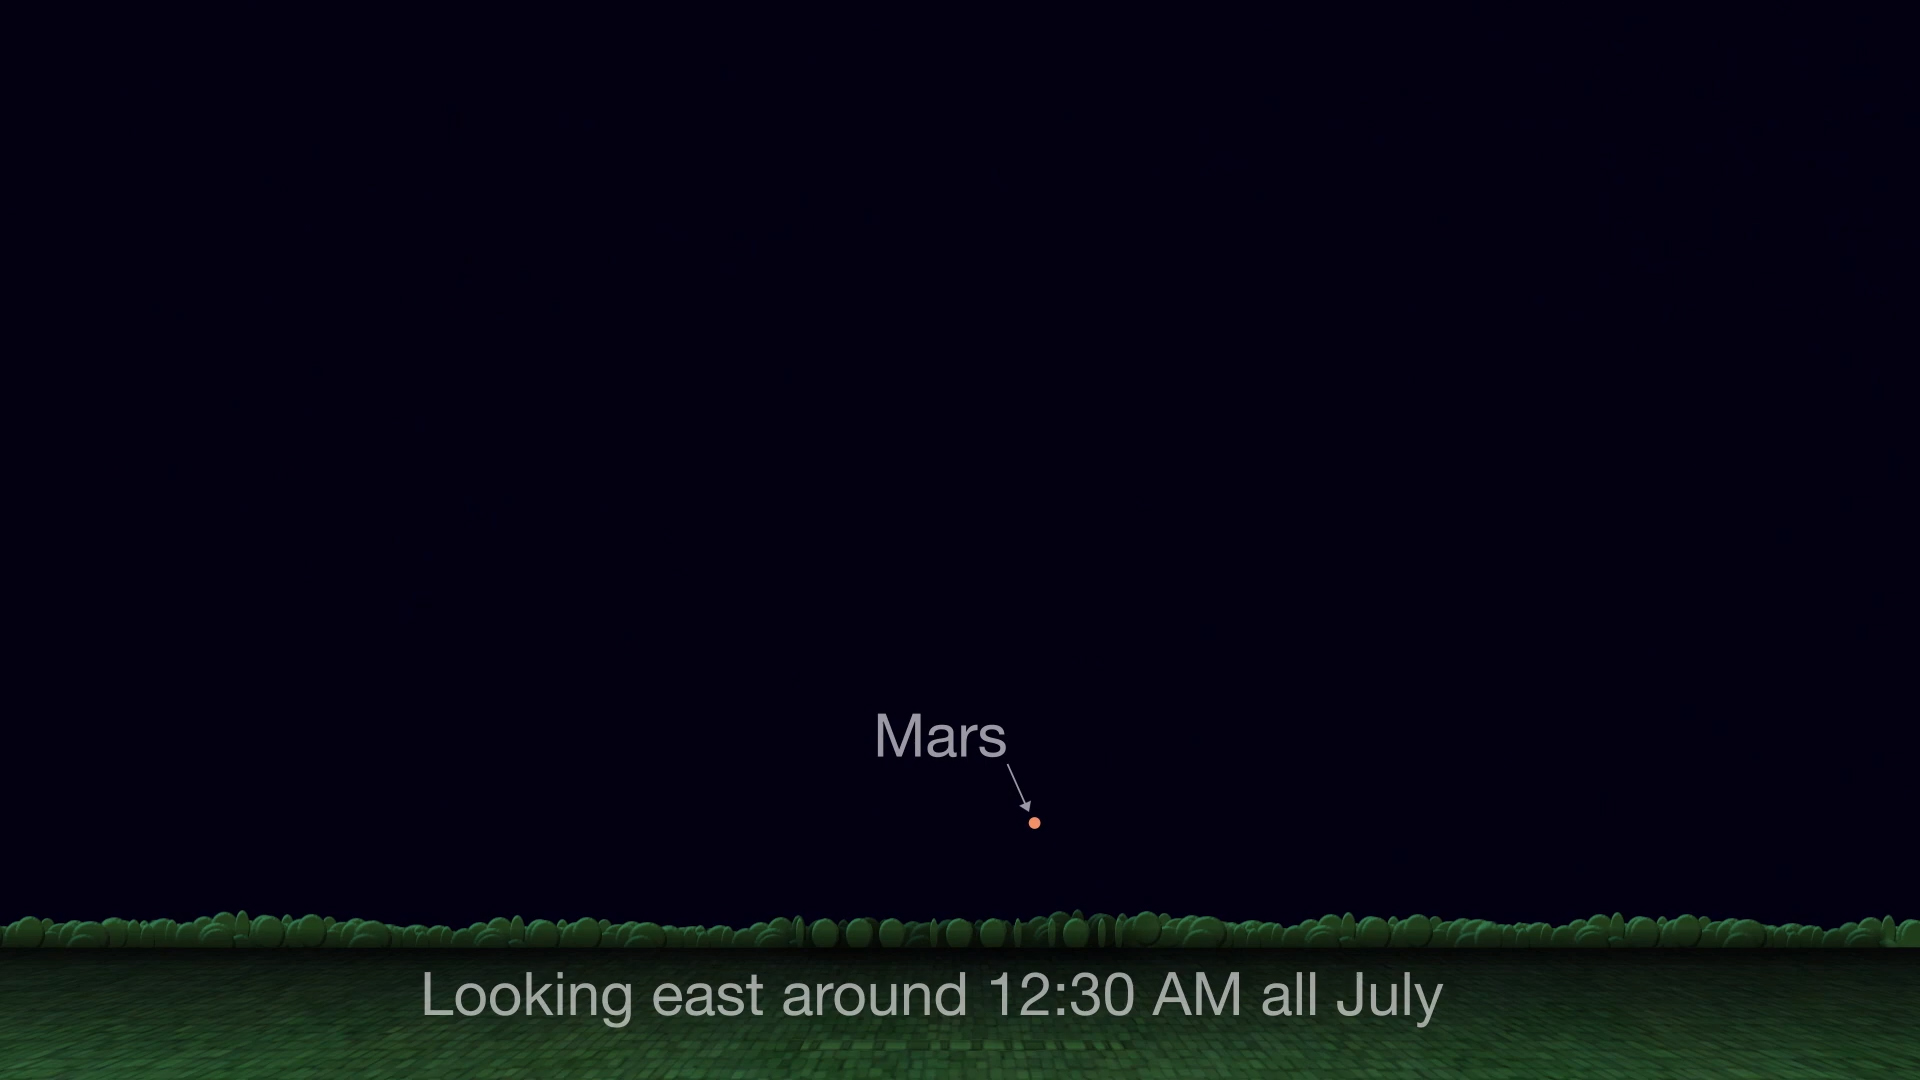 Sky chart showing Mars' position above the horizon around 12:30am in July